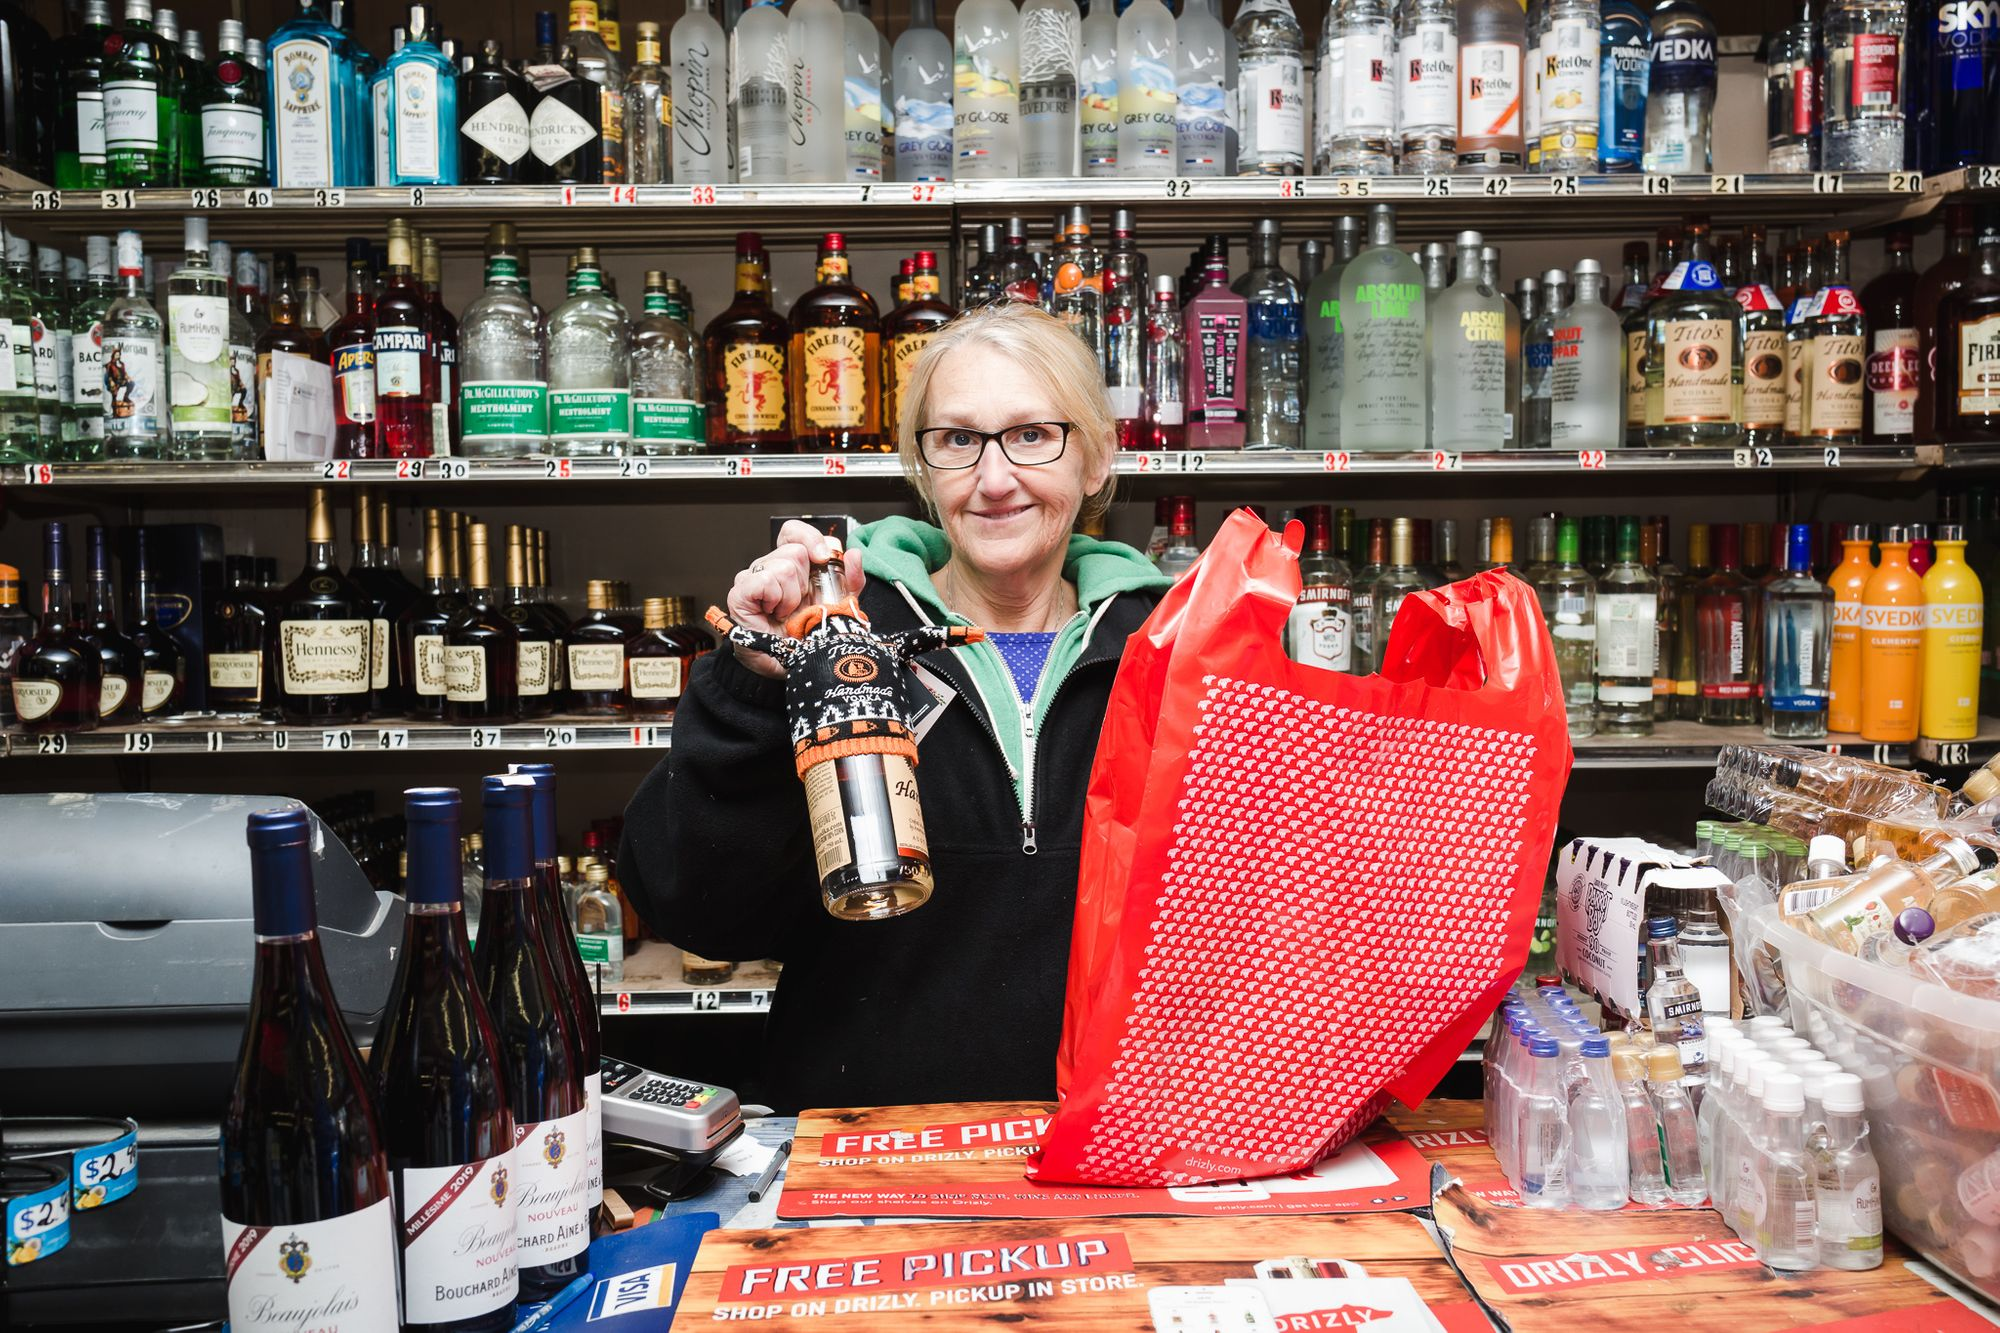 Customers appreciate Drizly delivery for beer, wine, and spirits favorites